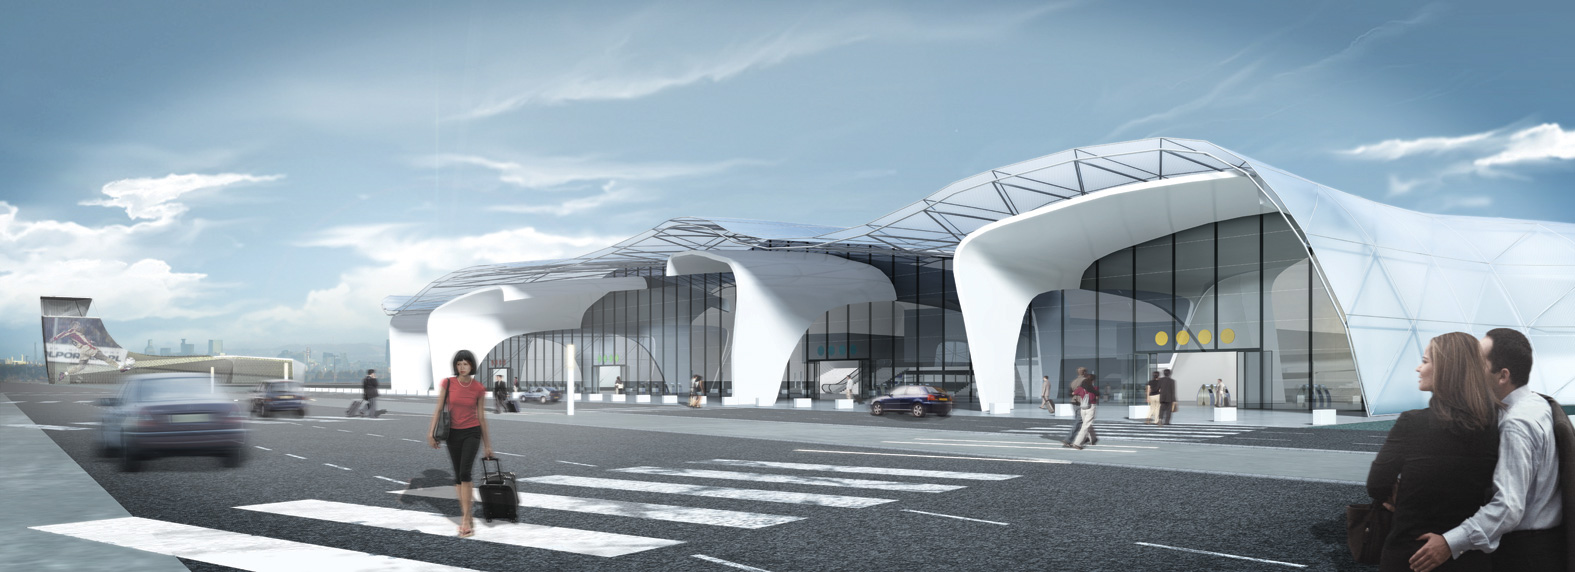 sustainable-airports-green-technologies-driving-terminal-design